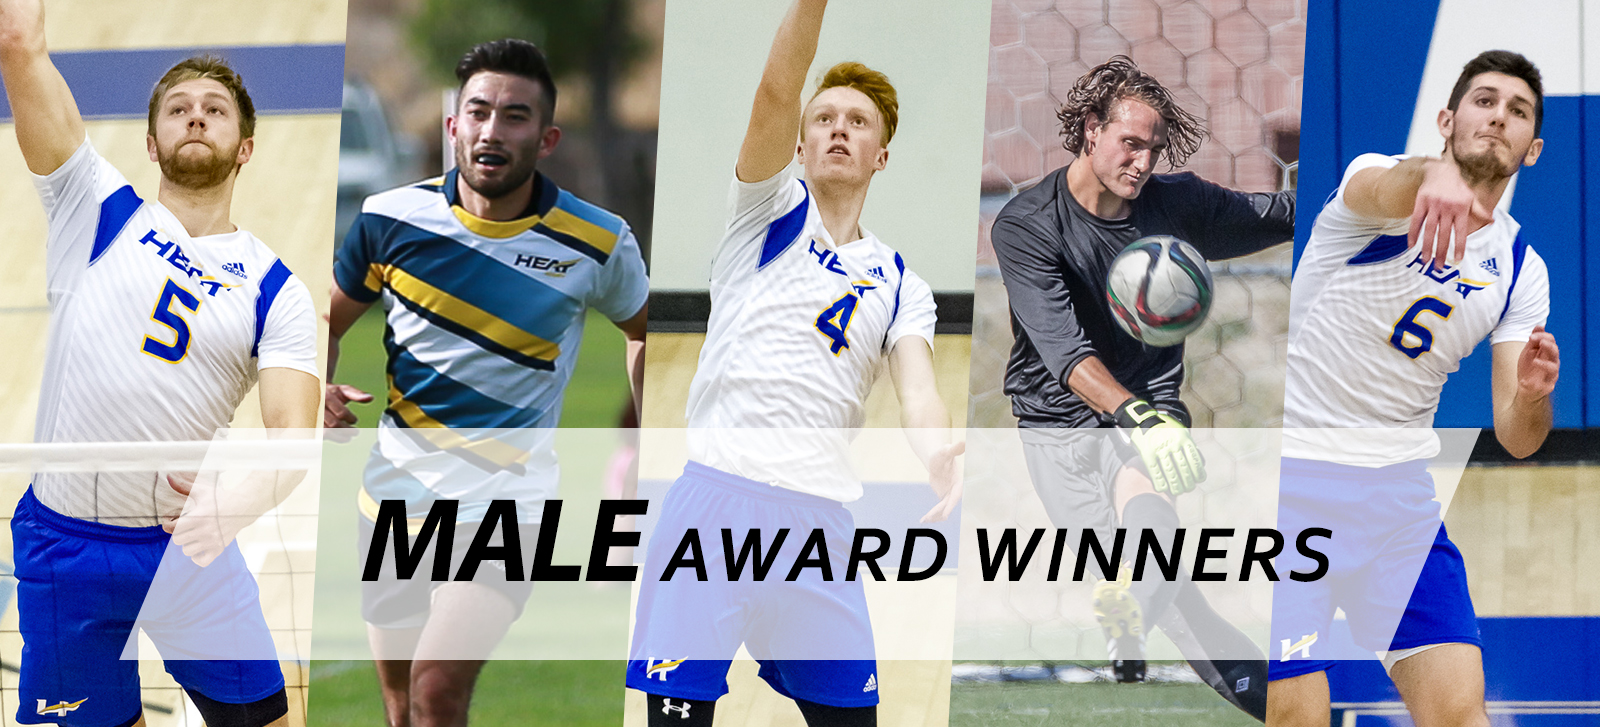 Male Award Winners for the 9th Annual Athletics Awards Banquet